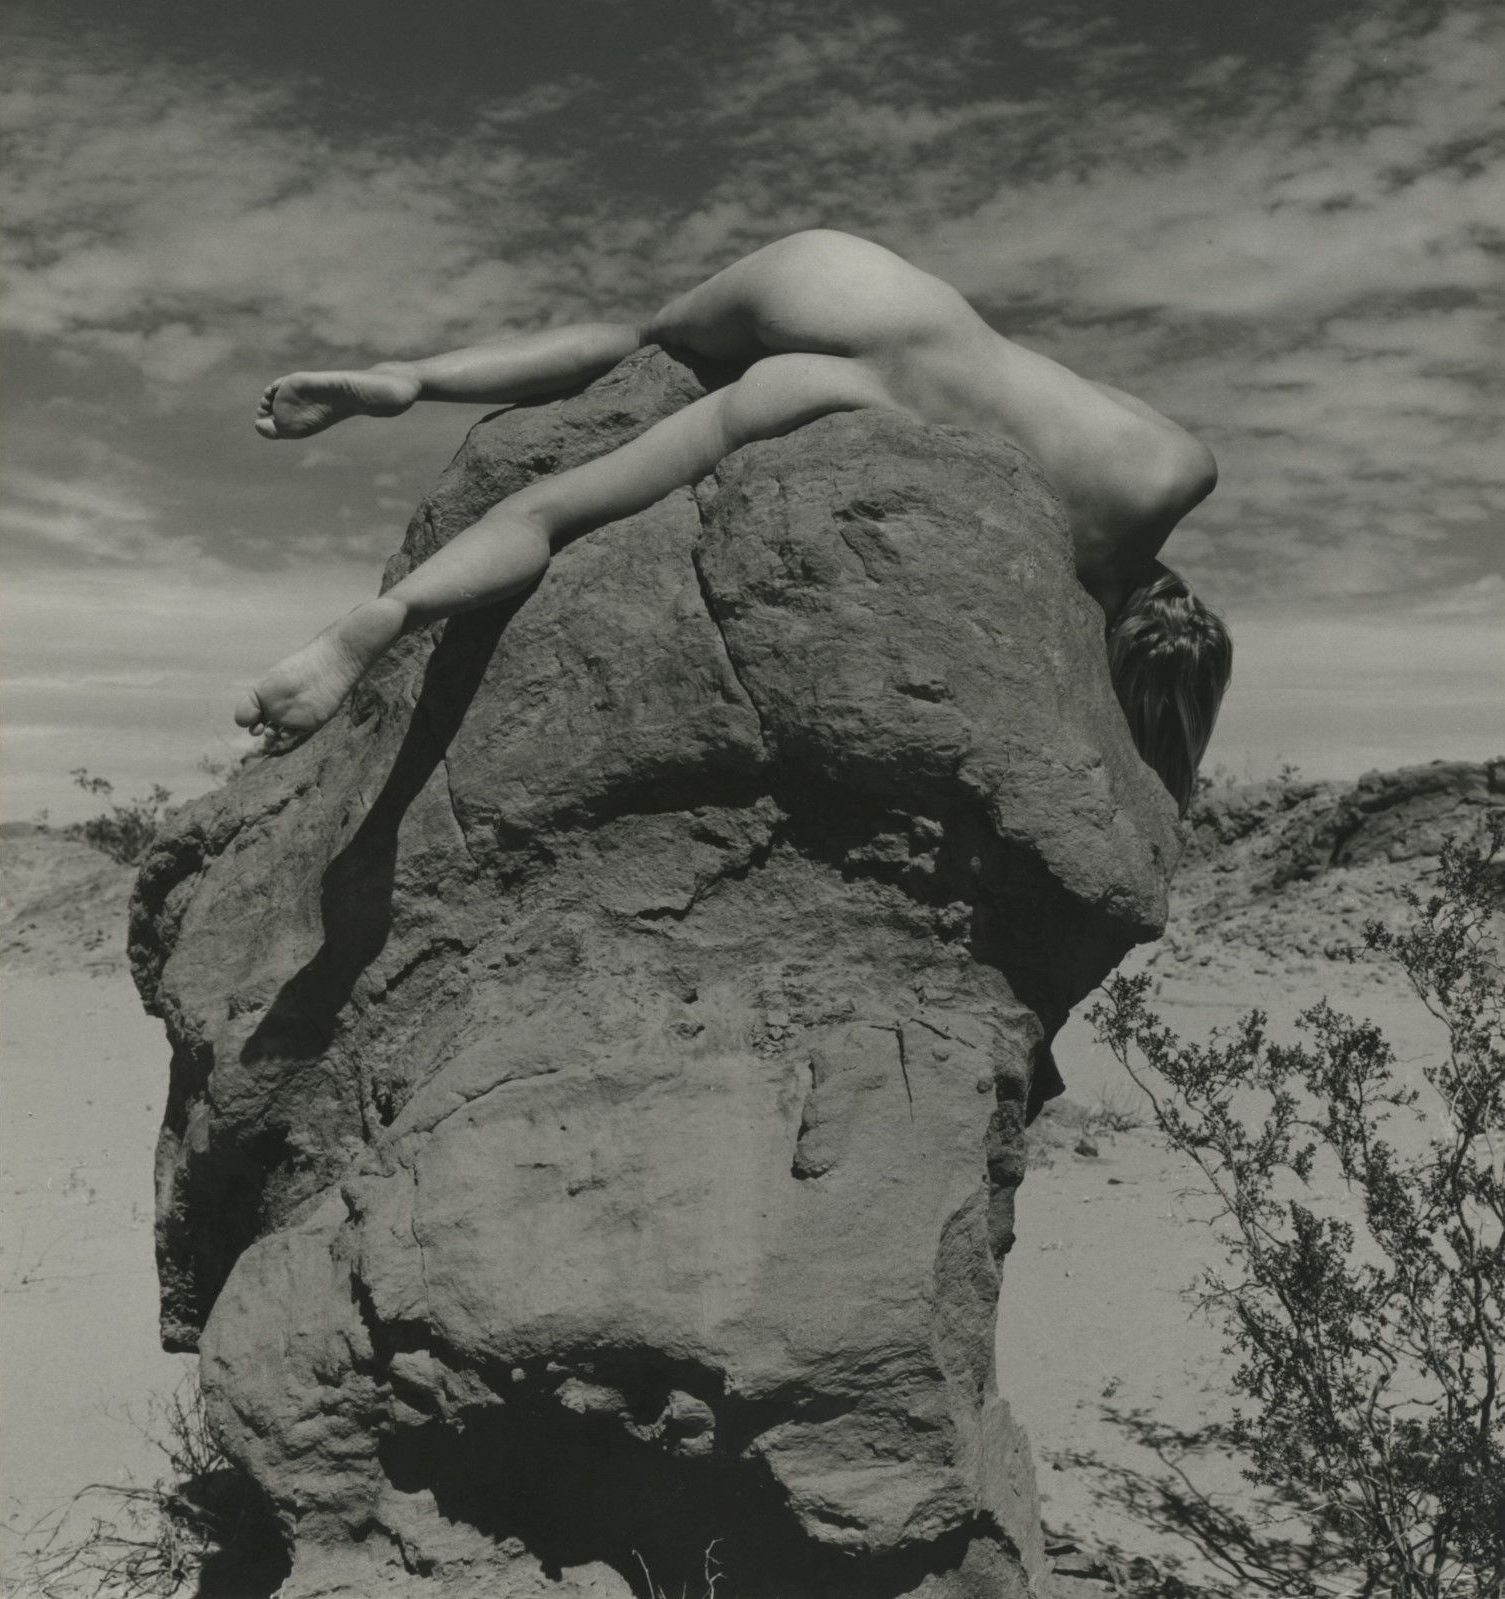 Andre_de_Dienes-01-thisisnthappiness.jpg